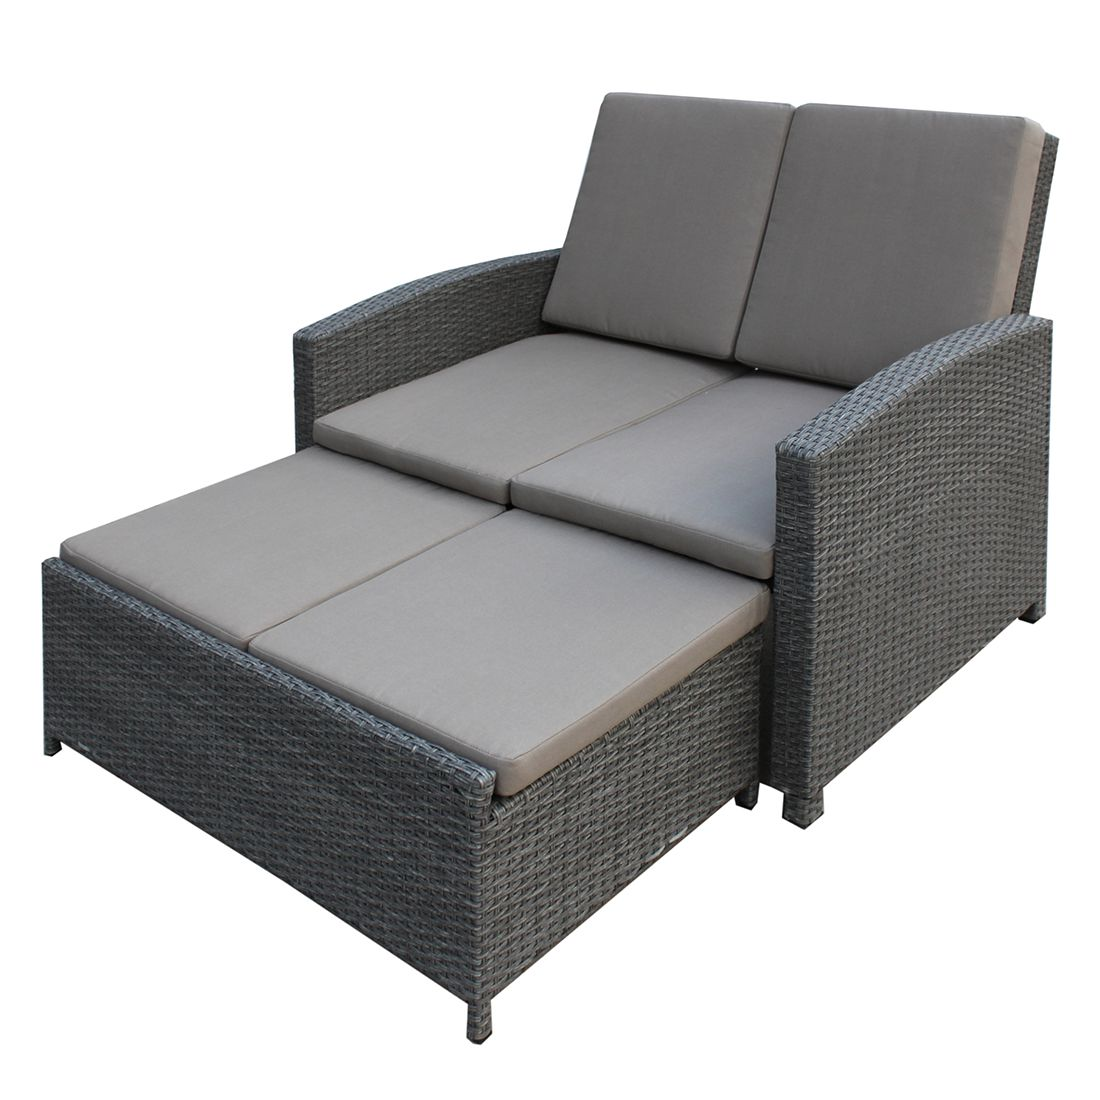 gartensofa villanova inkl hocker polyrattan grau textil grau ebay. Black Bedroom Furniture Sets. Home Design Ideas